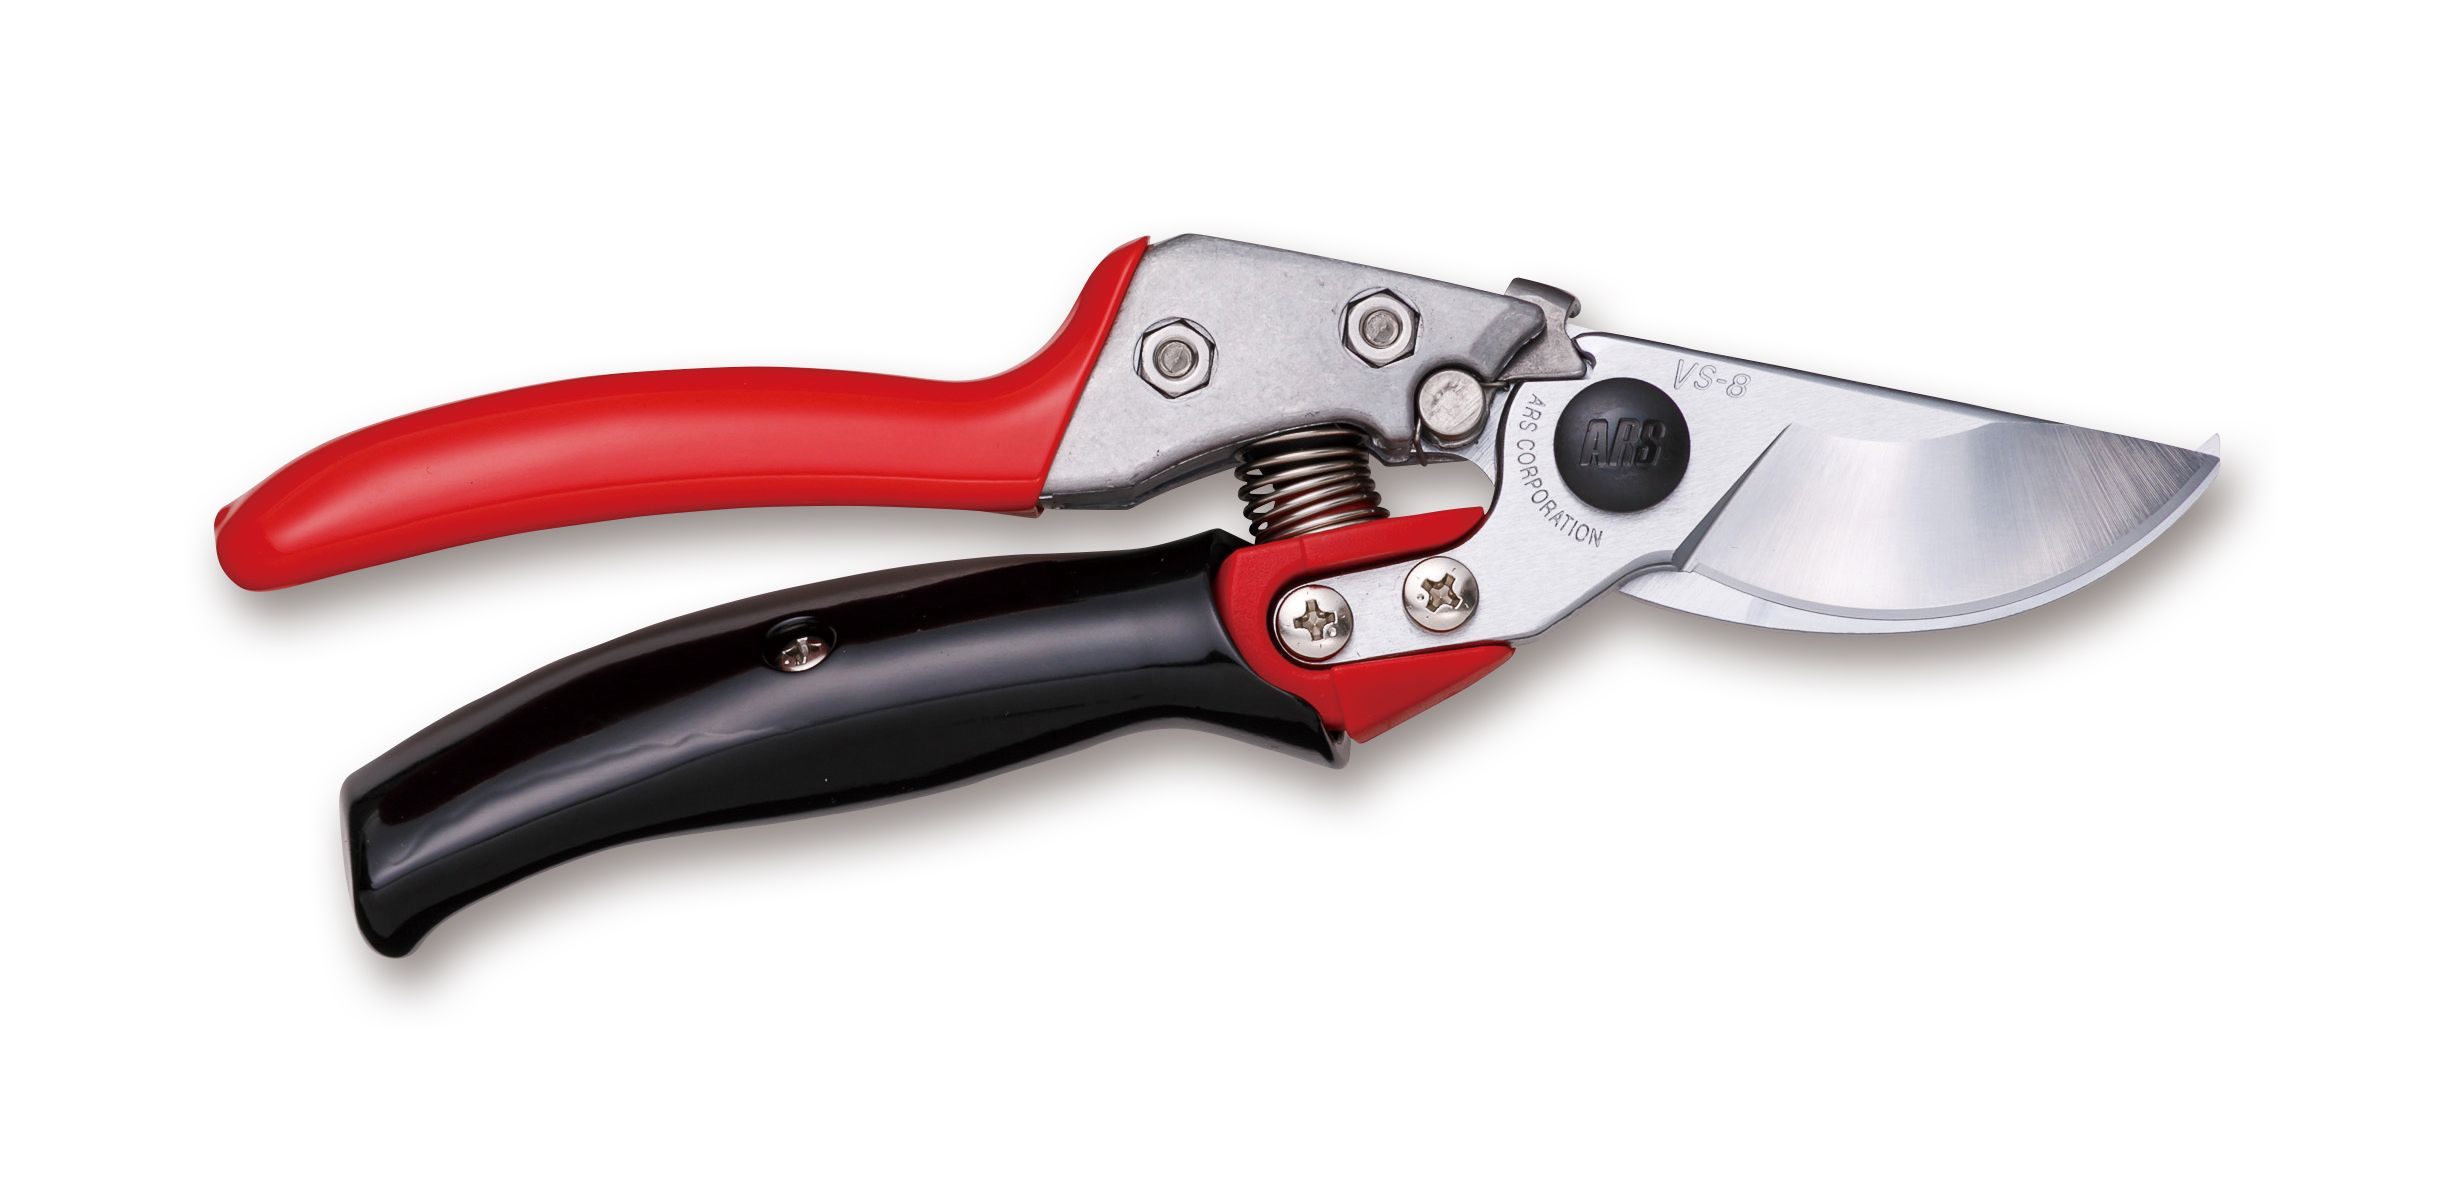 ARS-VS-8XR Professional Gardening Secateurs